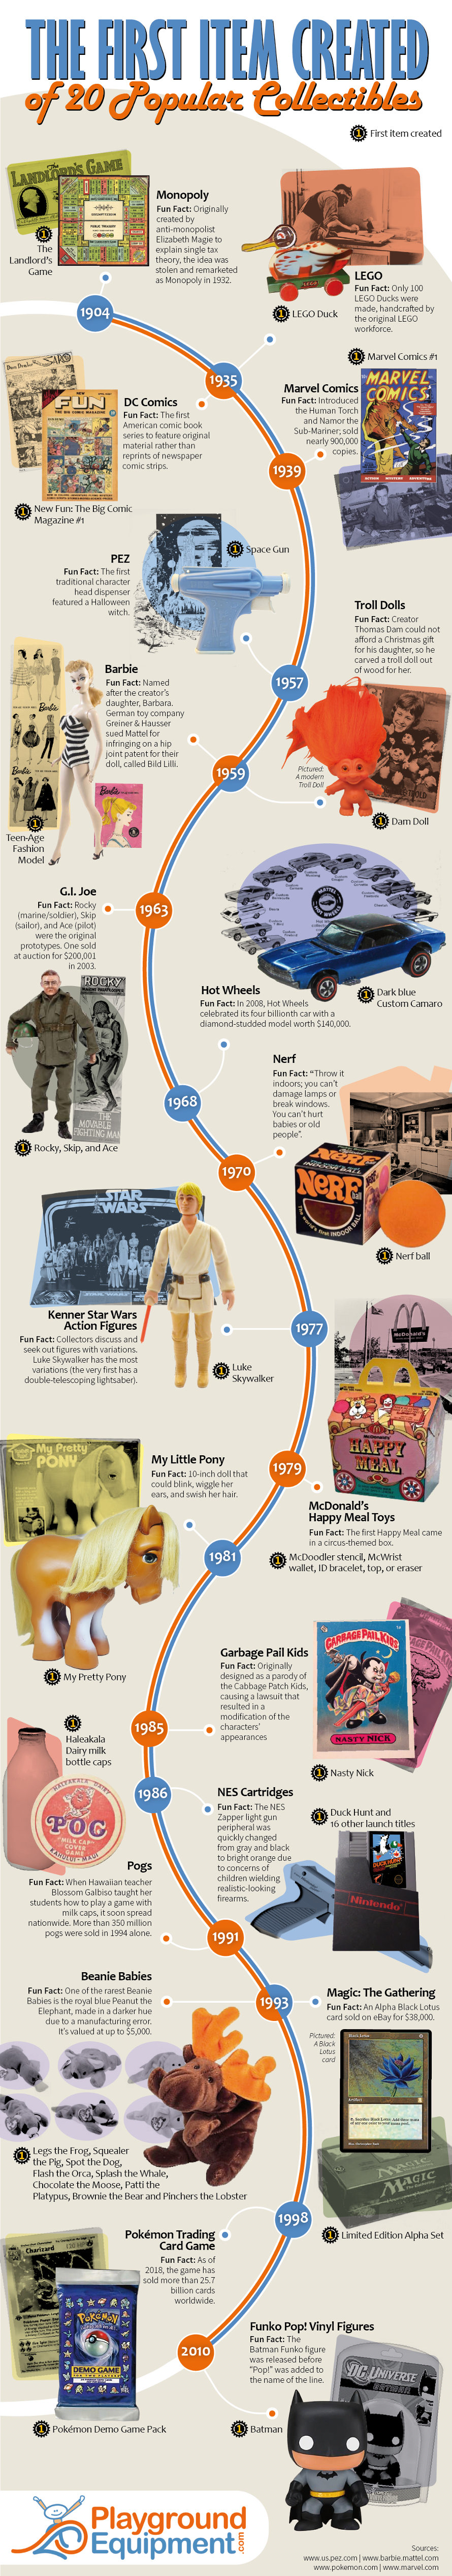 History of 20 Popular Children's Collectibles and How They Started - Infographic